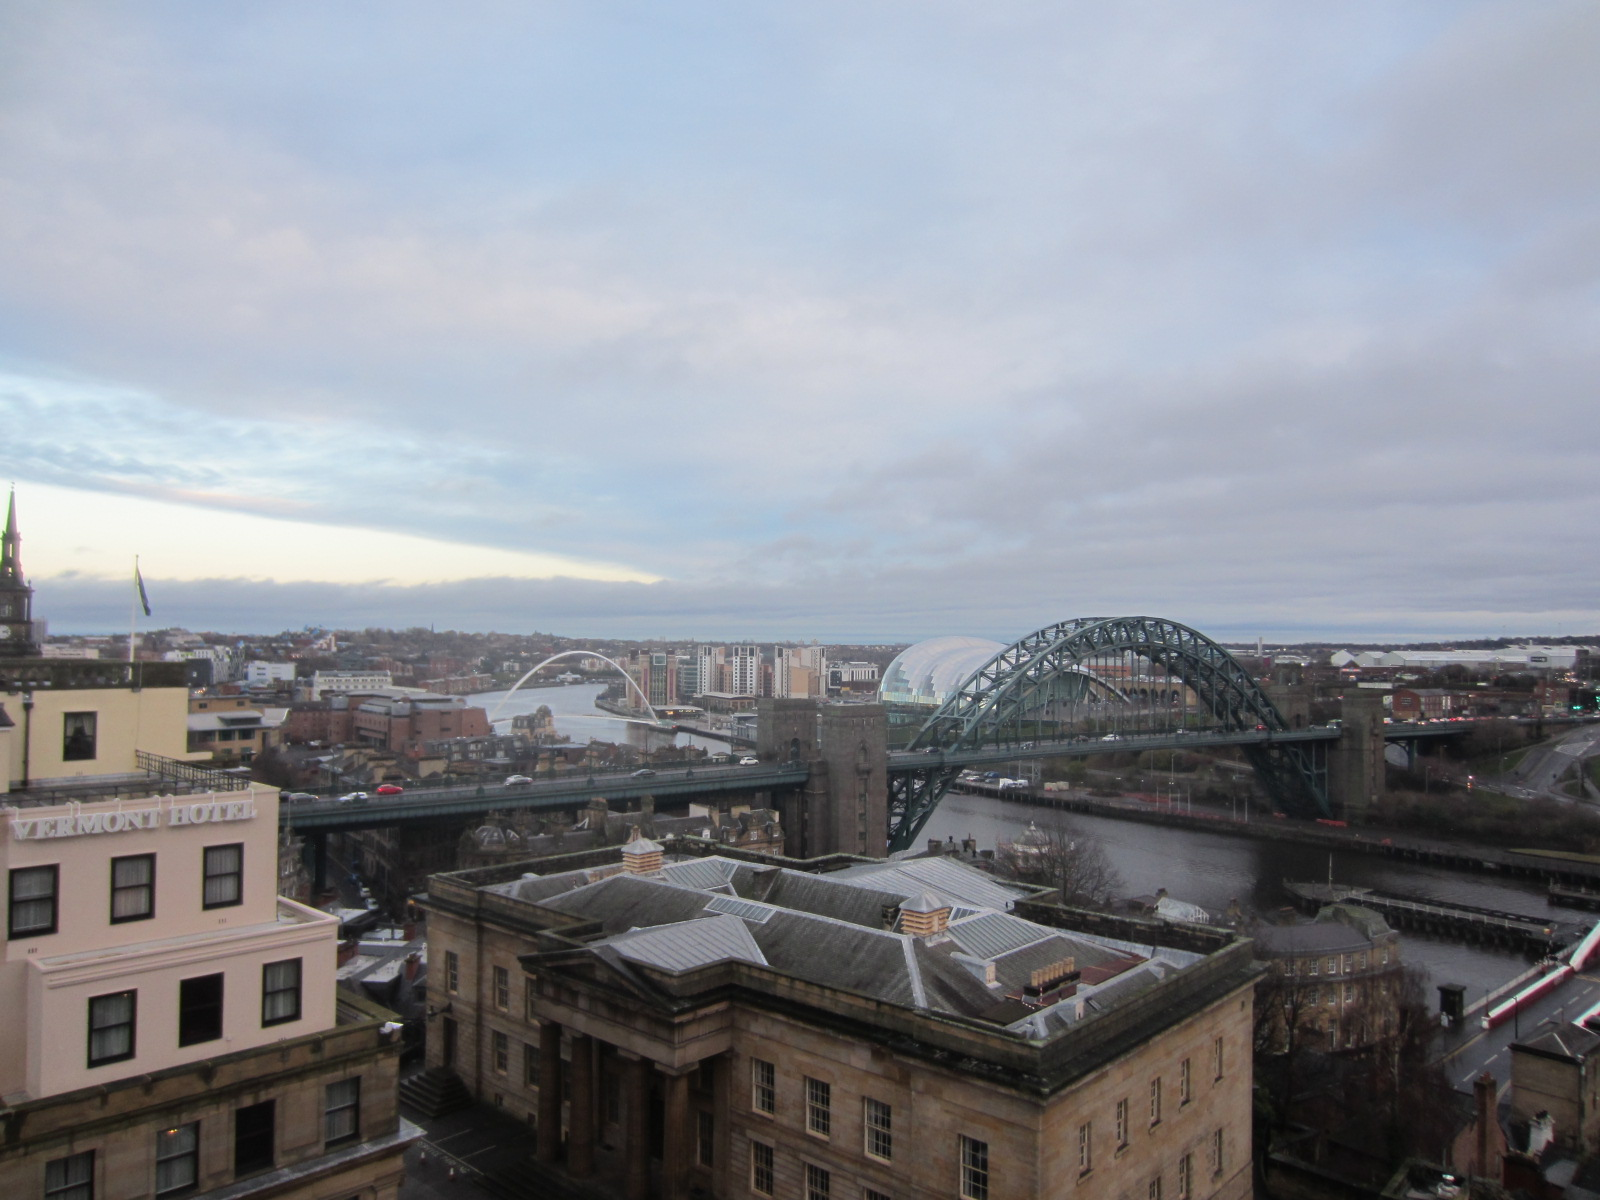 The view from Newcastle castle.